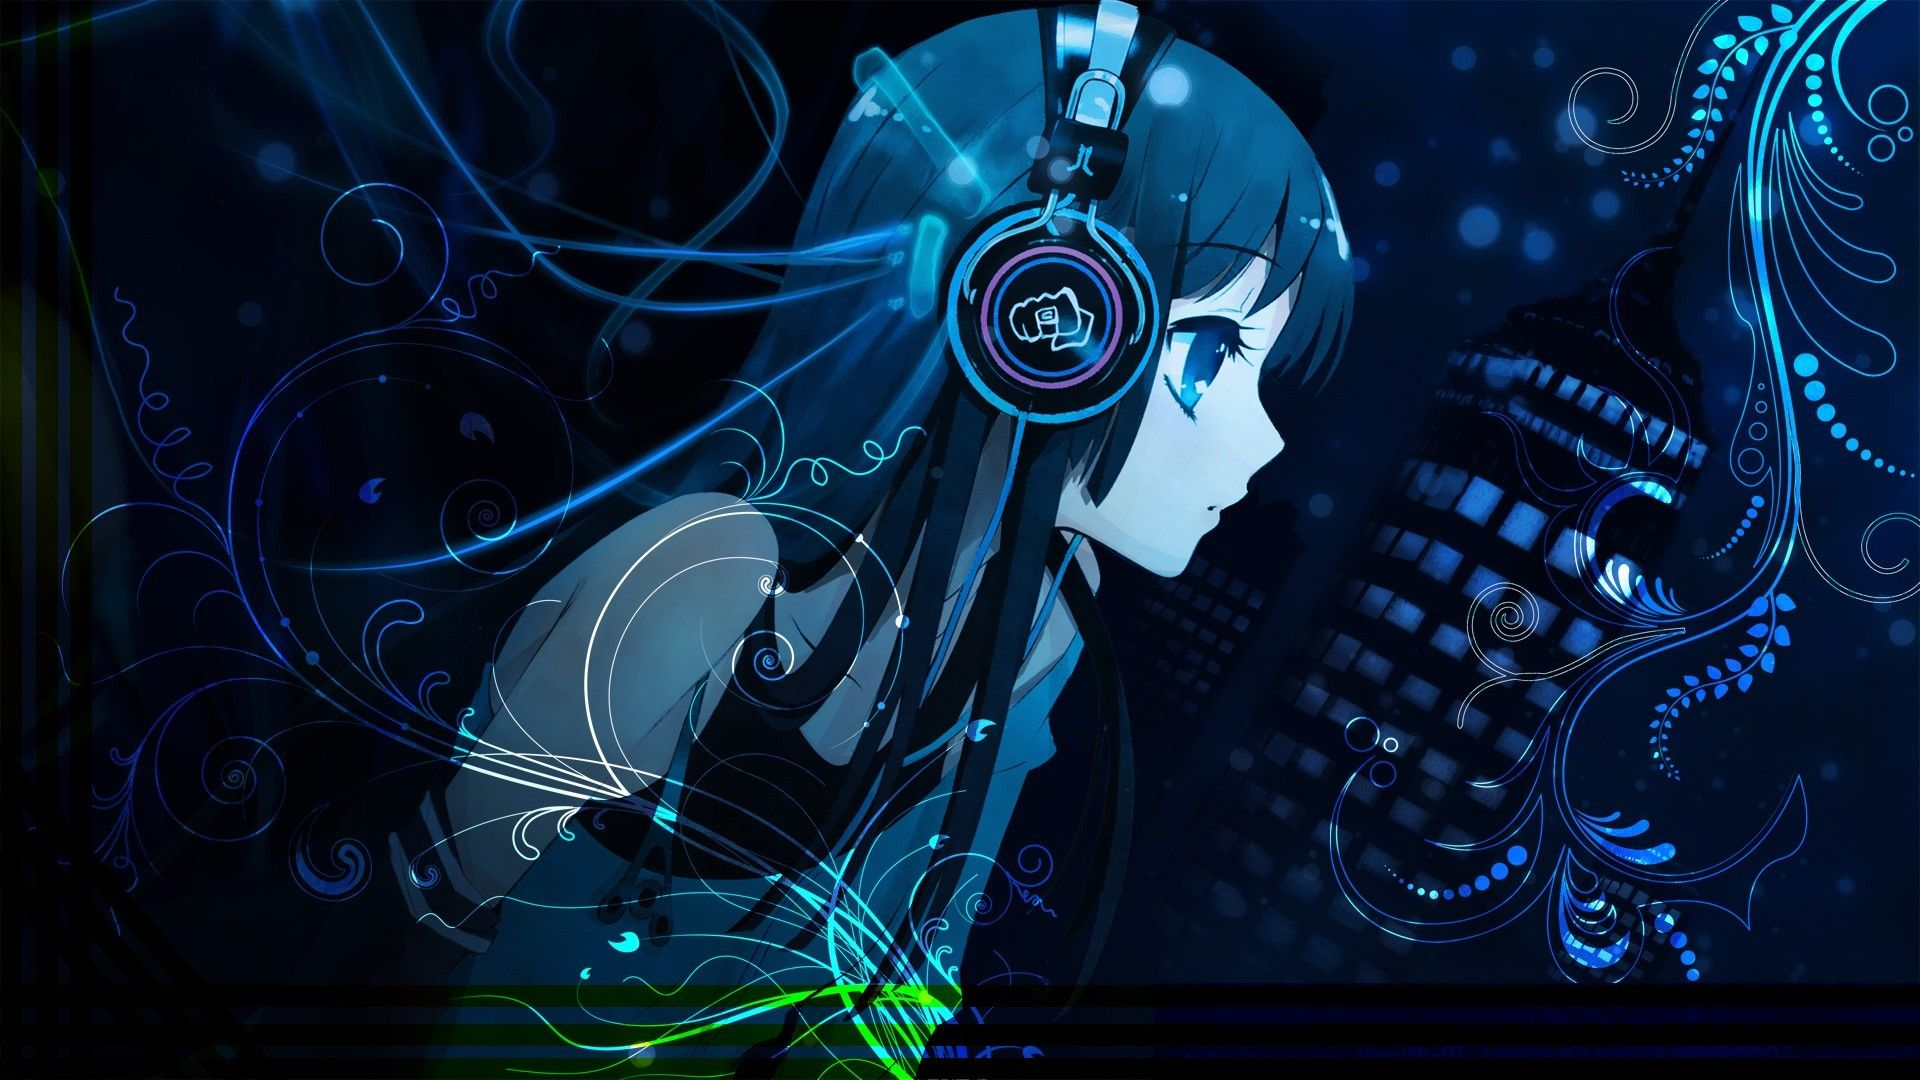 Anime Music Girl Wallpaper in high Quality Anime Wide HD Wallpapers   live wallpaper in 2019 ...